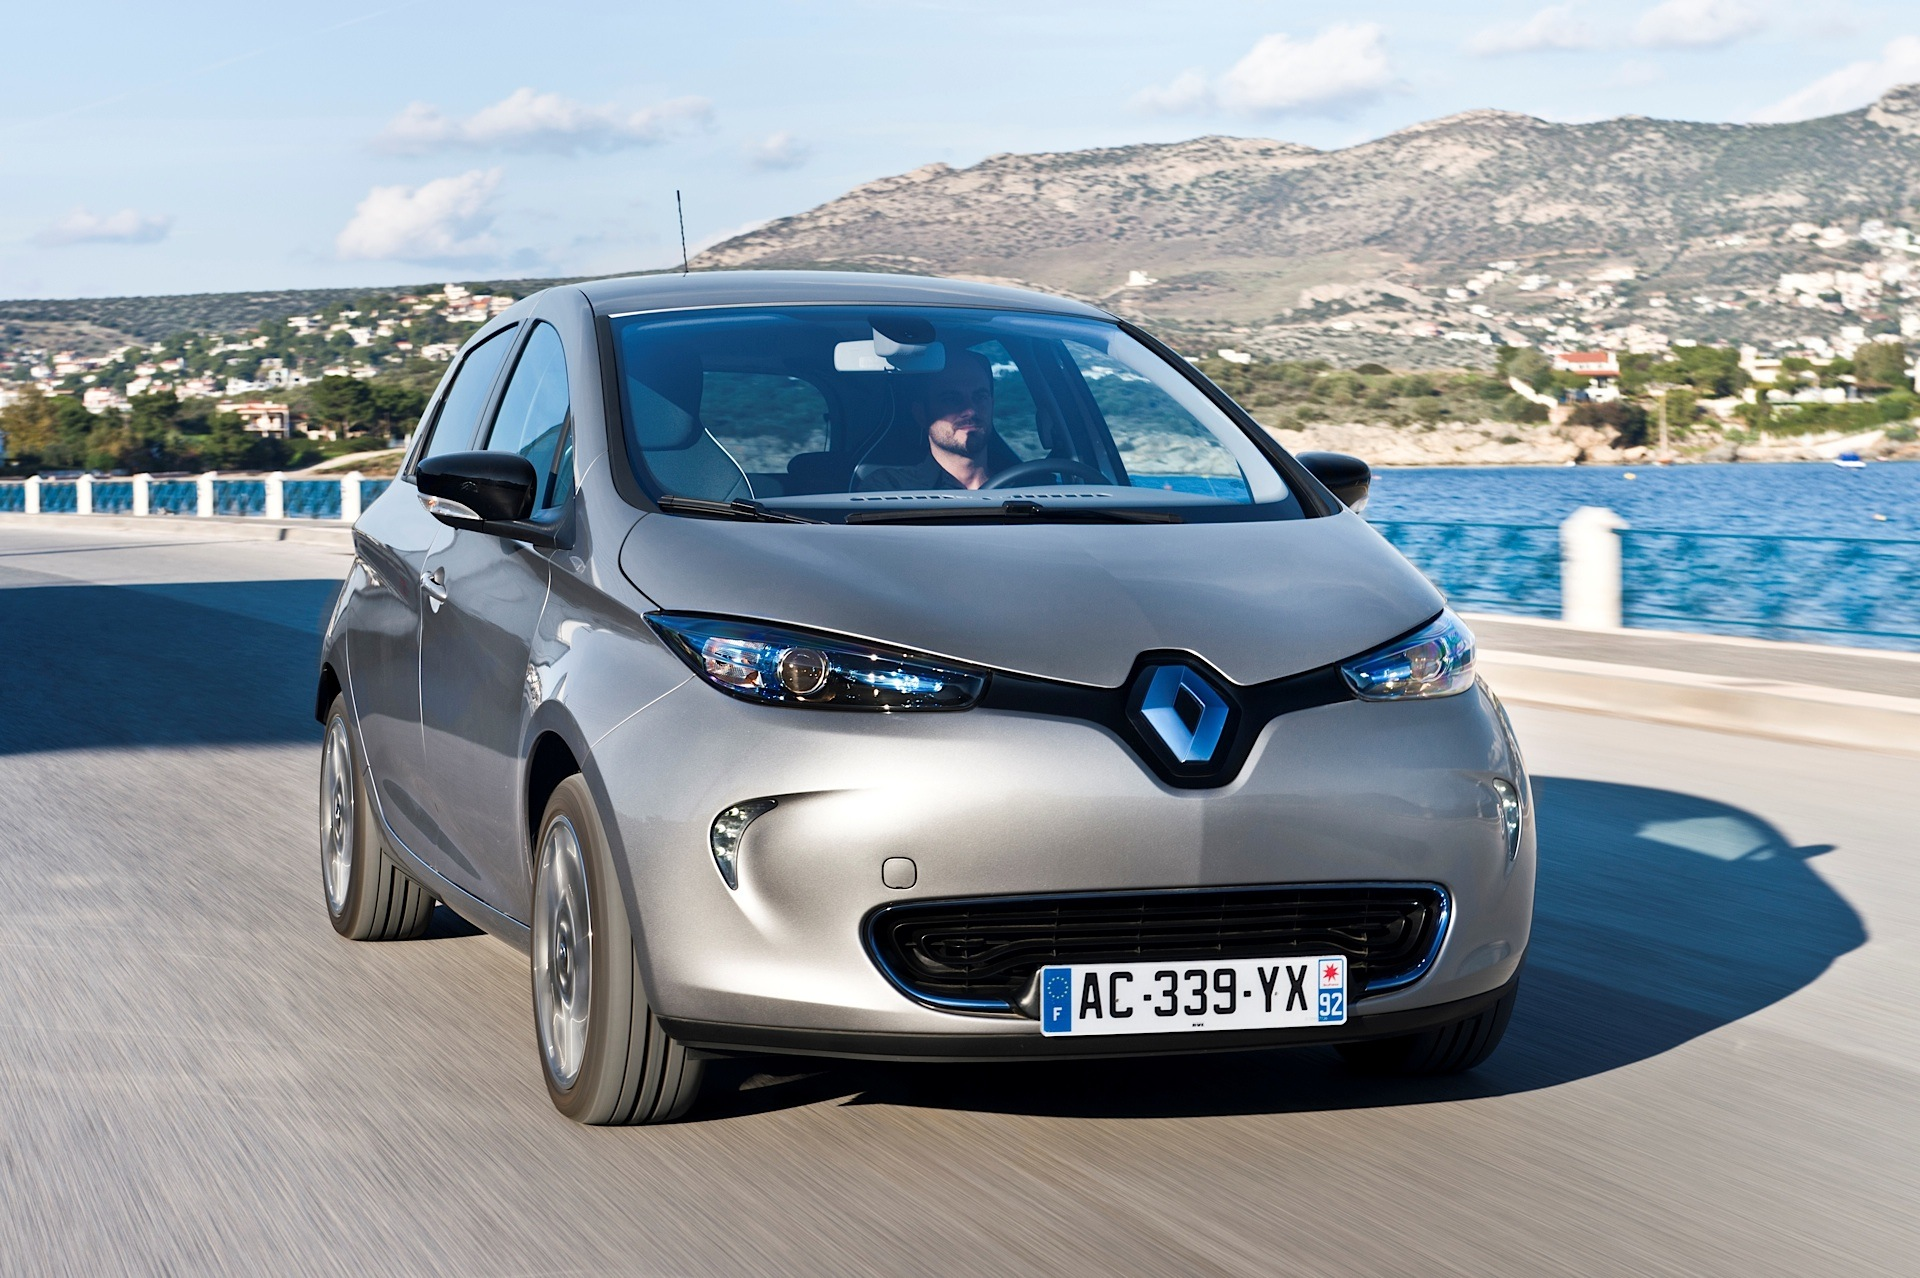 renault zoe specs 2013 2014 2015 2016 2017 autoevolution. Black Bedroom Furniture Sets. Home Design Ideas